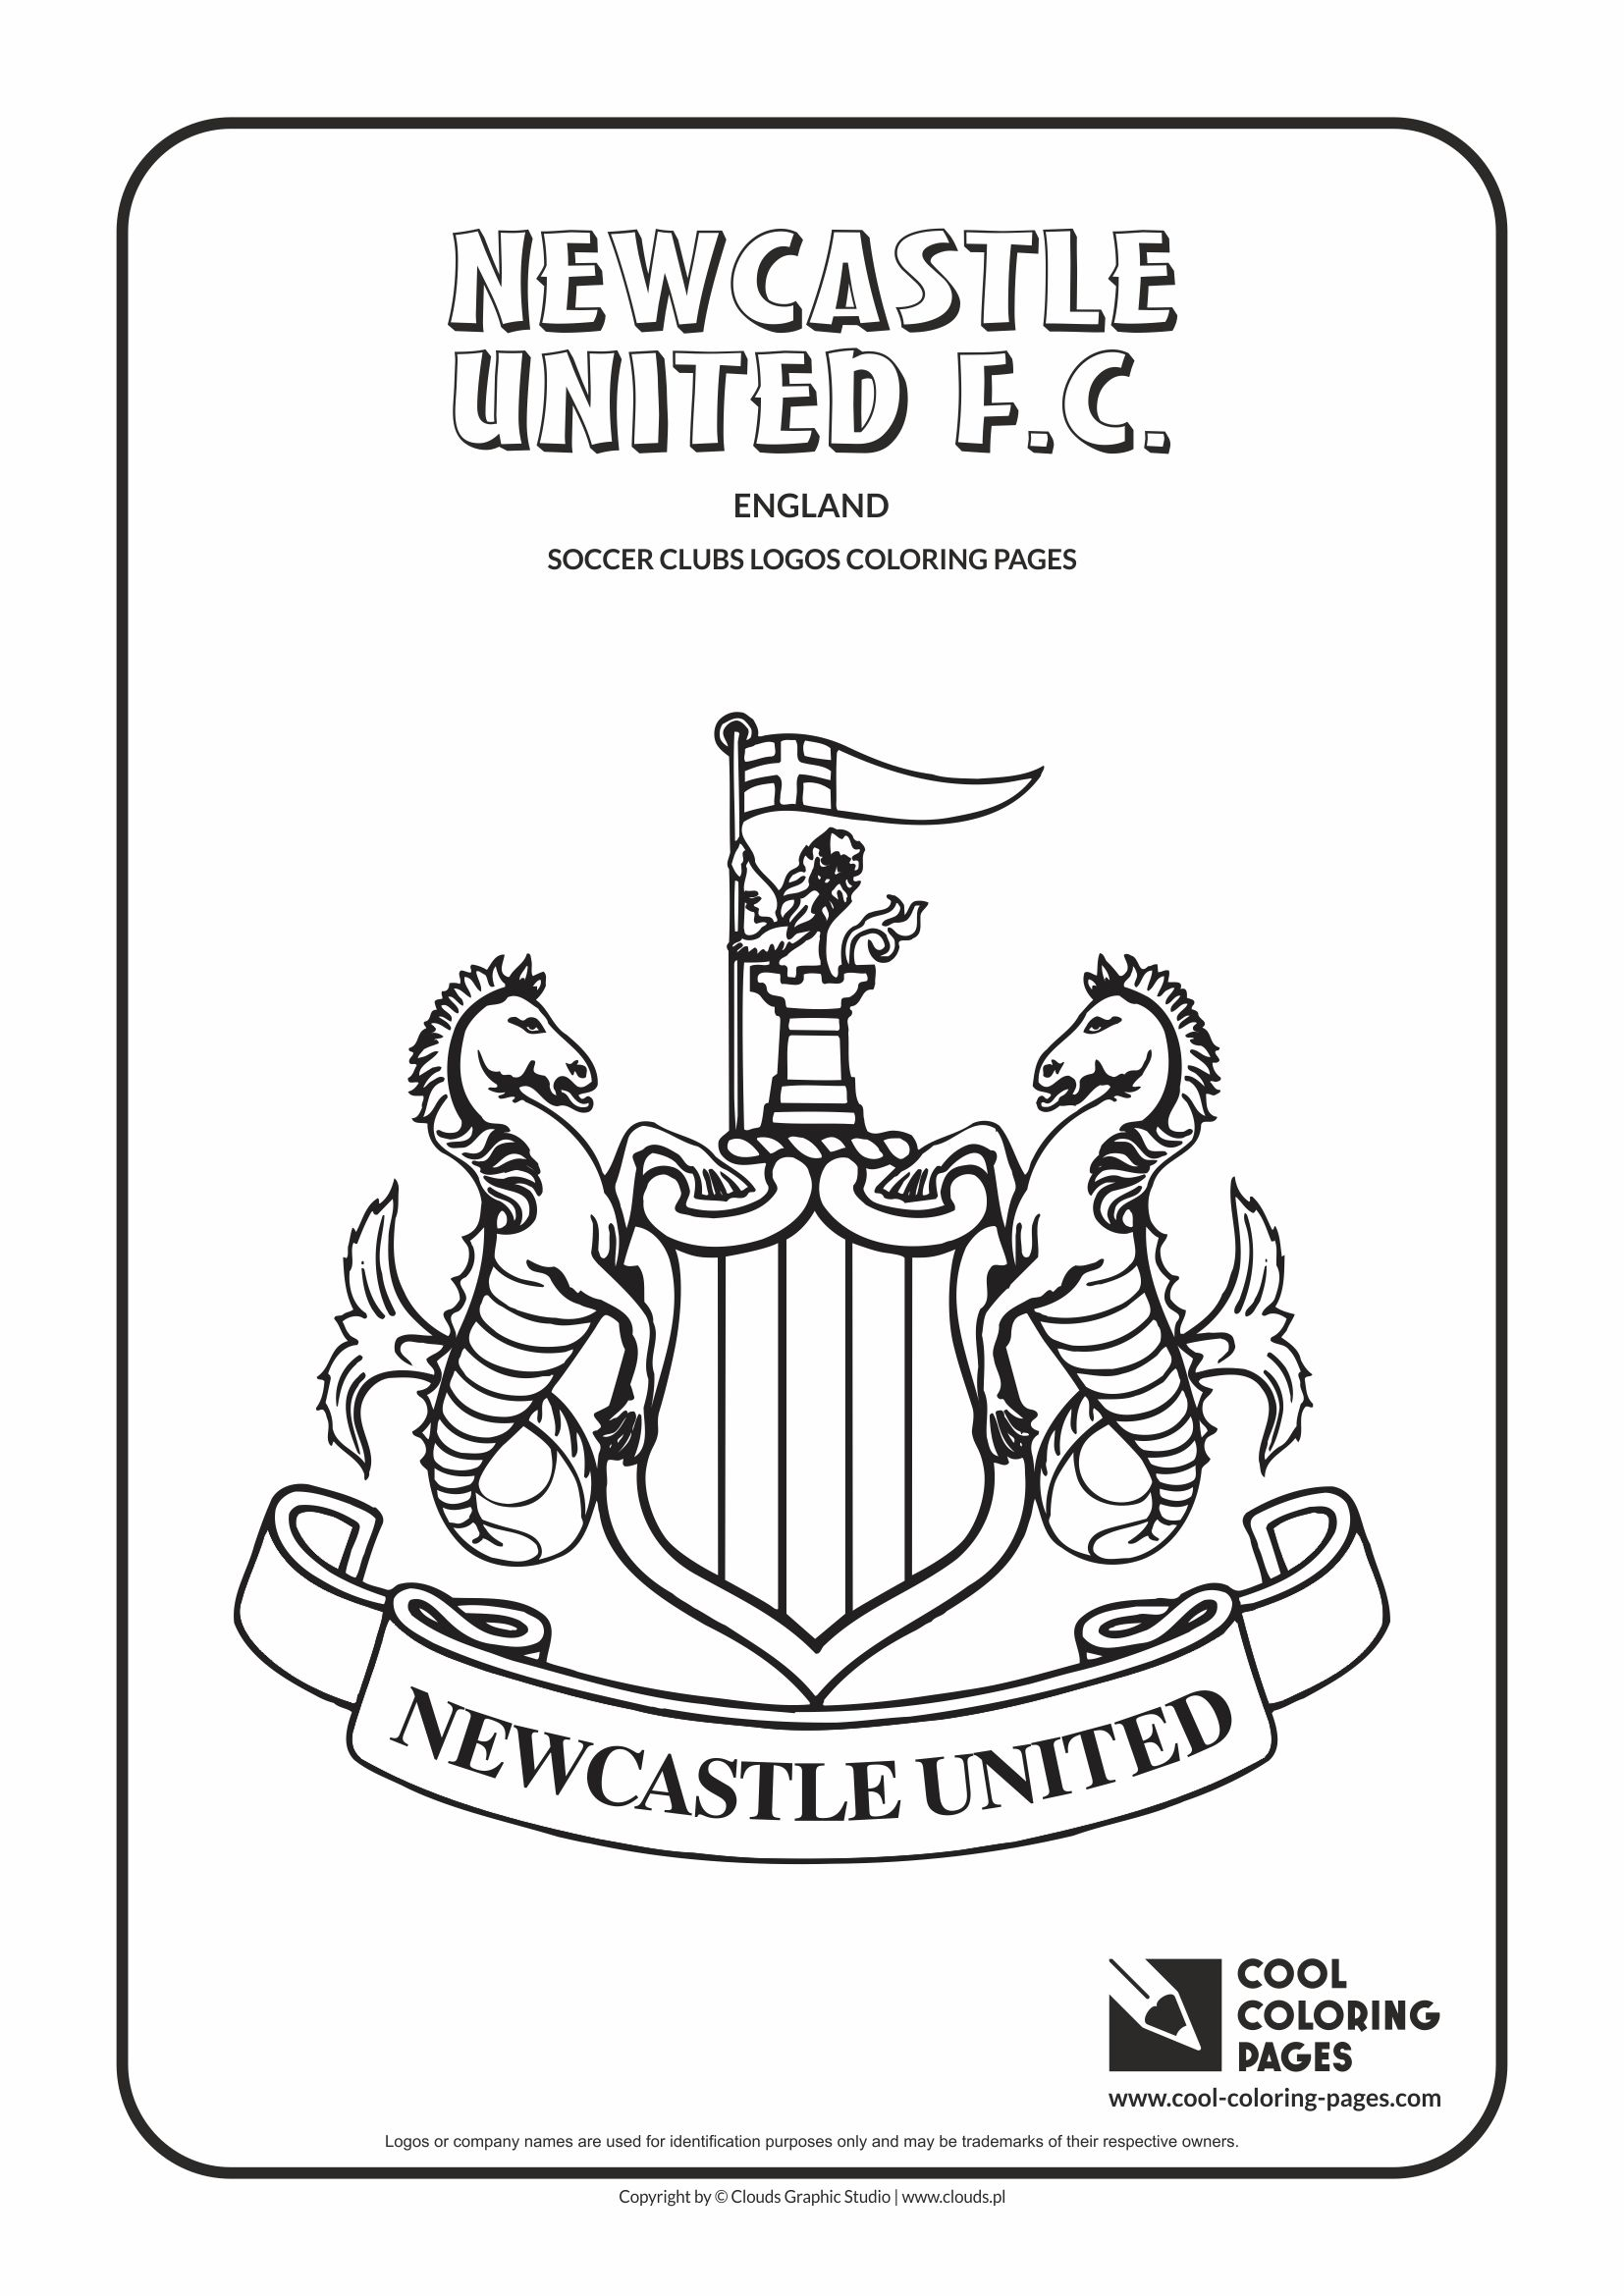 Newcastle United F.C. logo coloring / Coloring page with Newcastle United F.C. logo / Newcastle United F.C. logo colouring page.